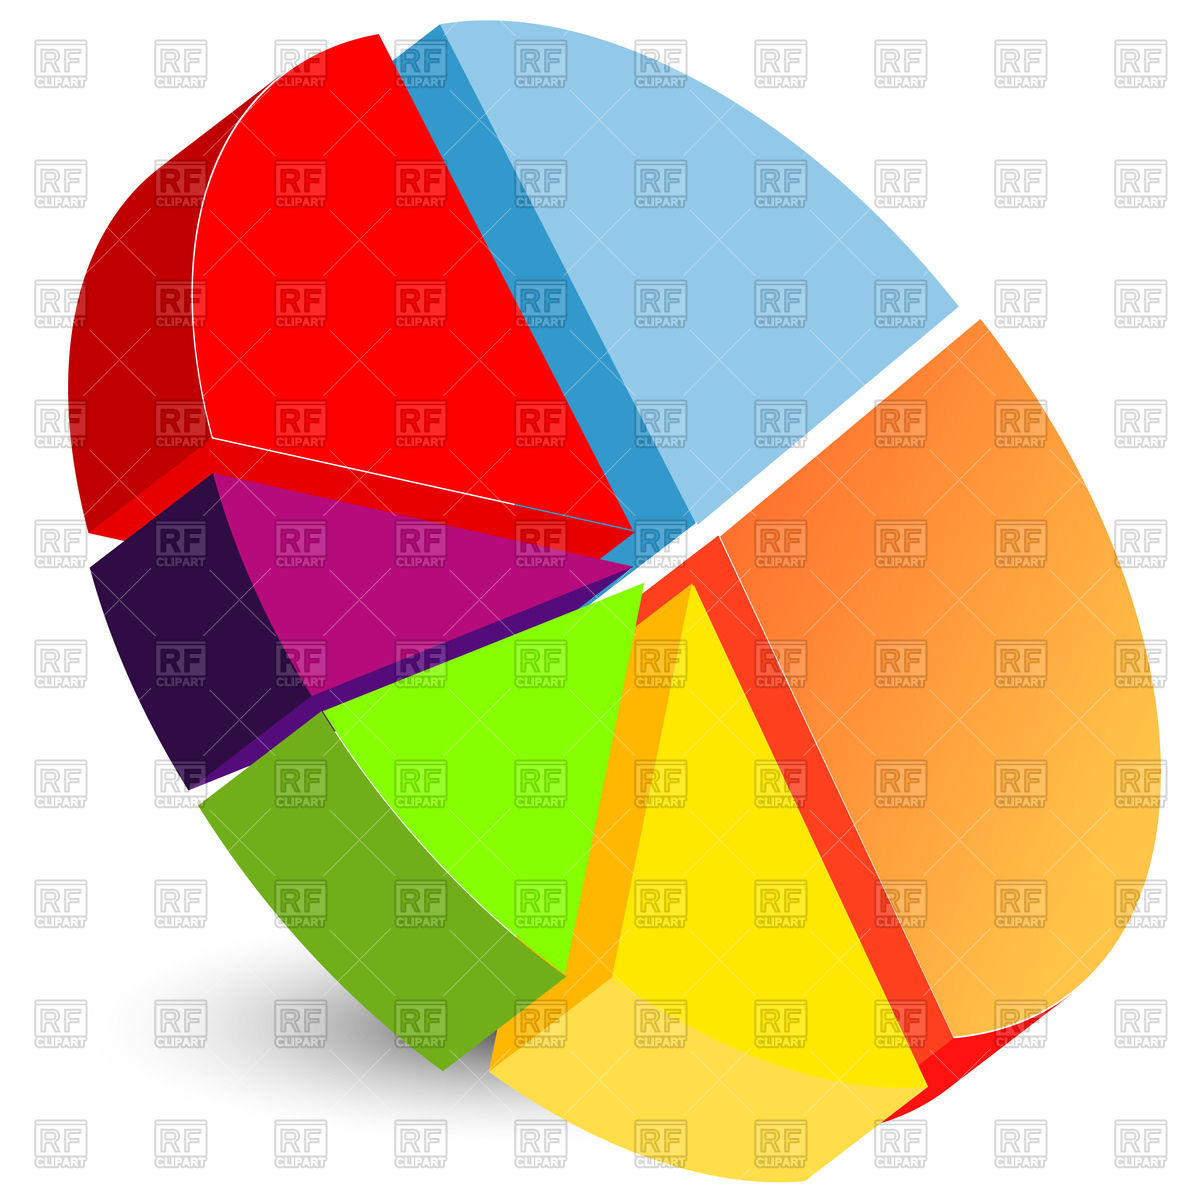 3D pie chart icon Vector Image #44720.